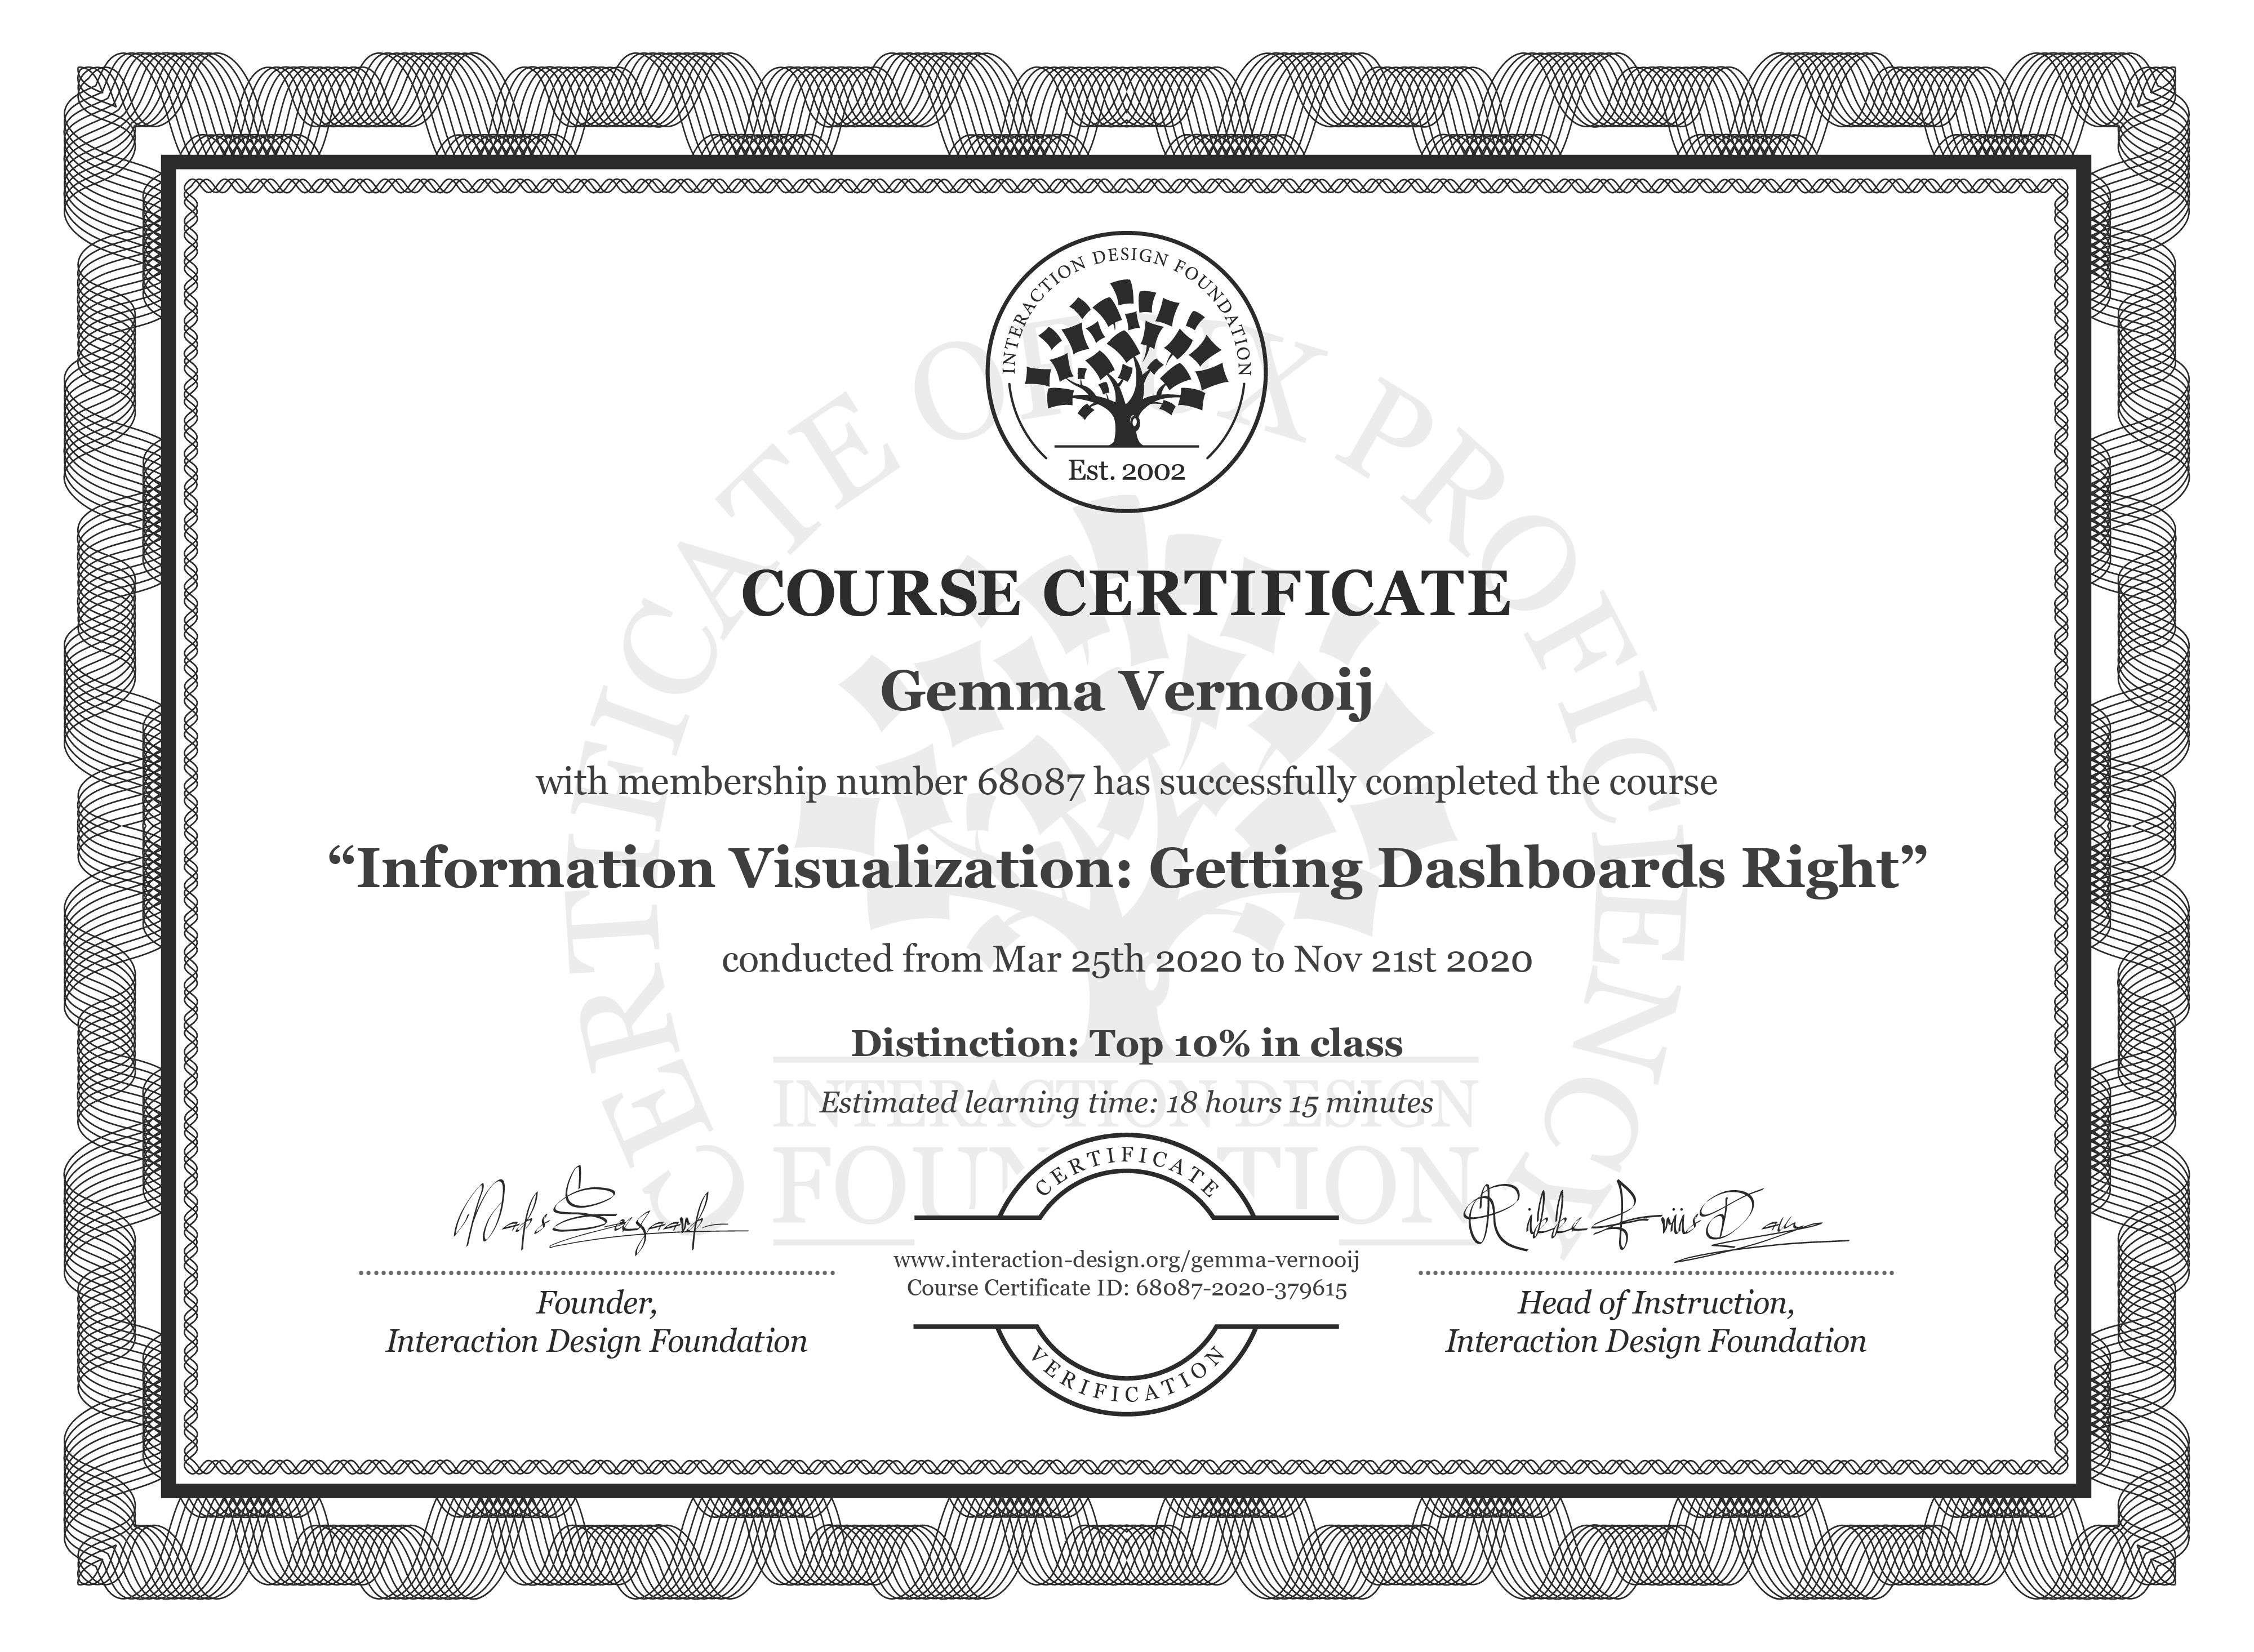 Gemma Vernooij's Course Certificate: Information Visualization: Getting Dashboards Right